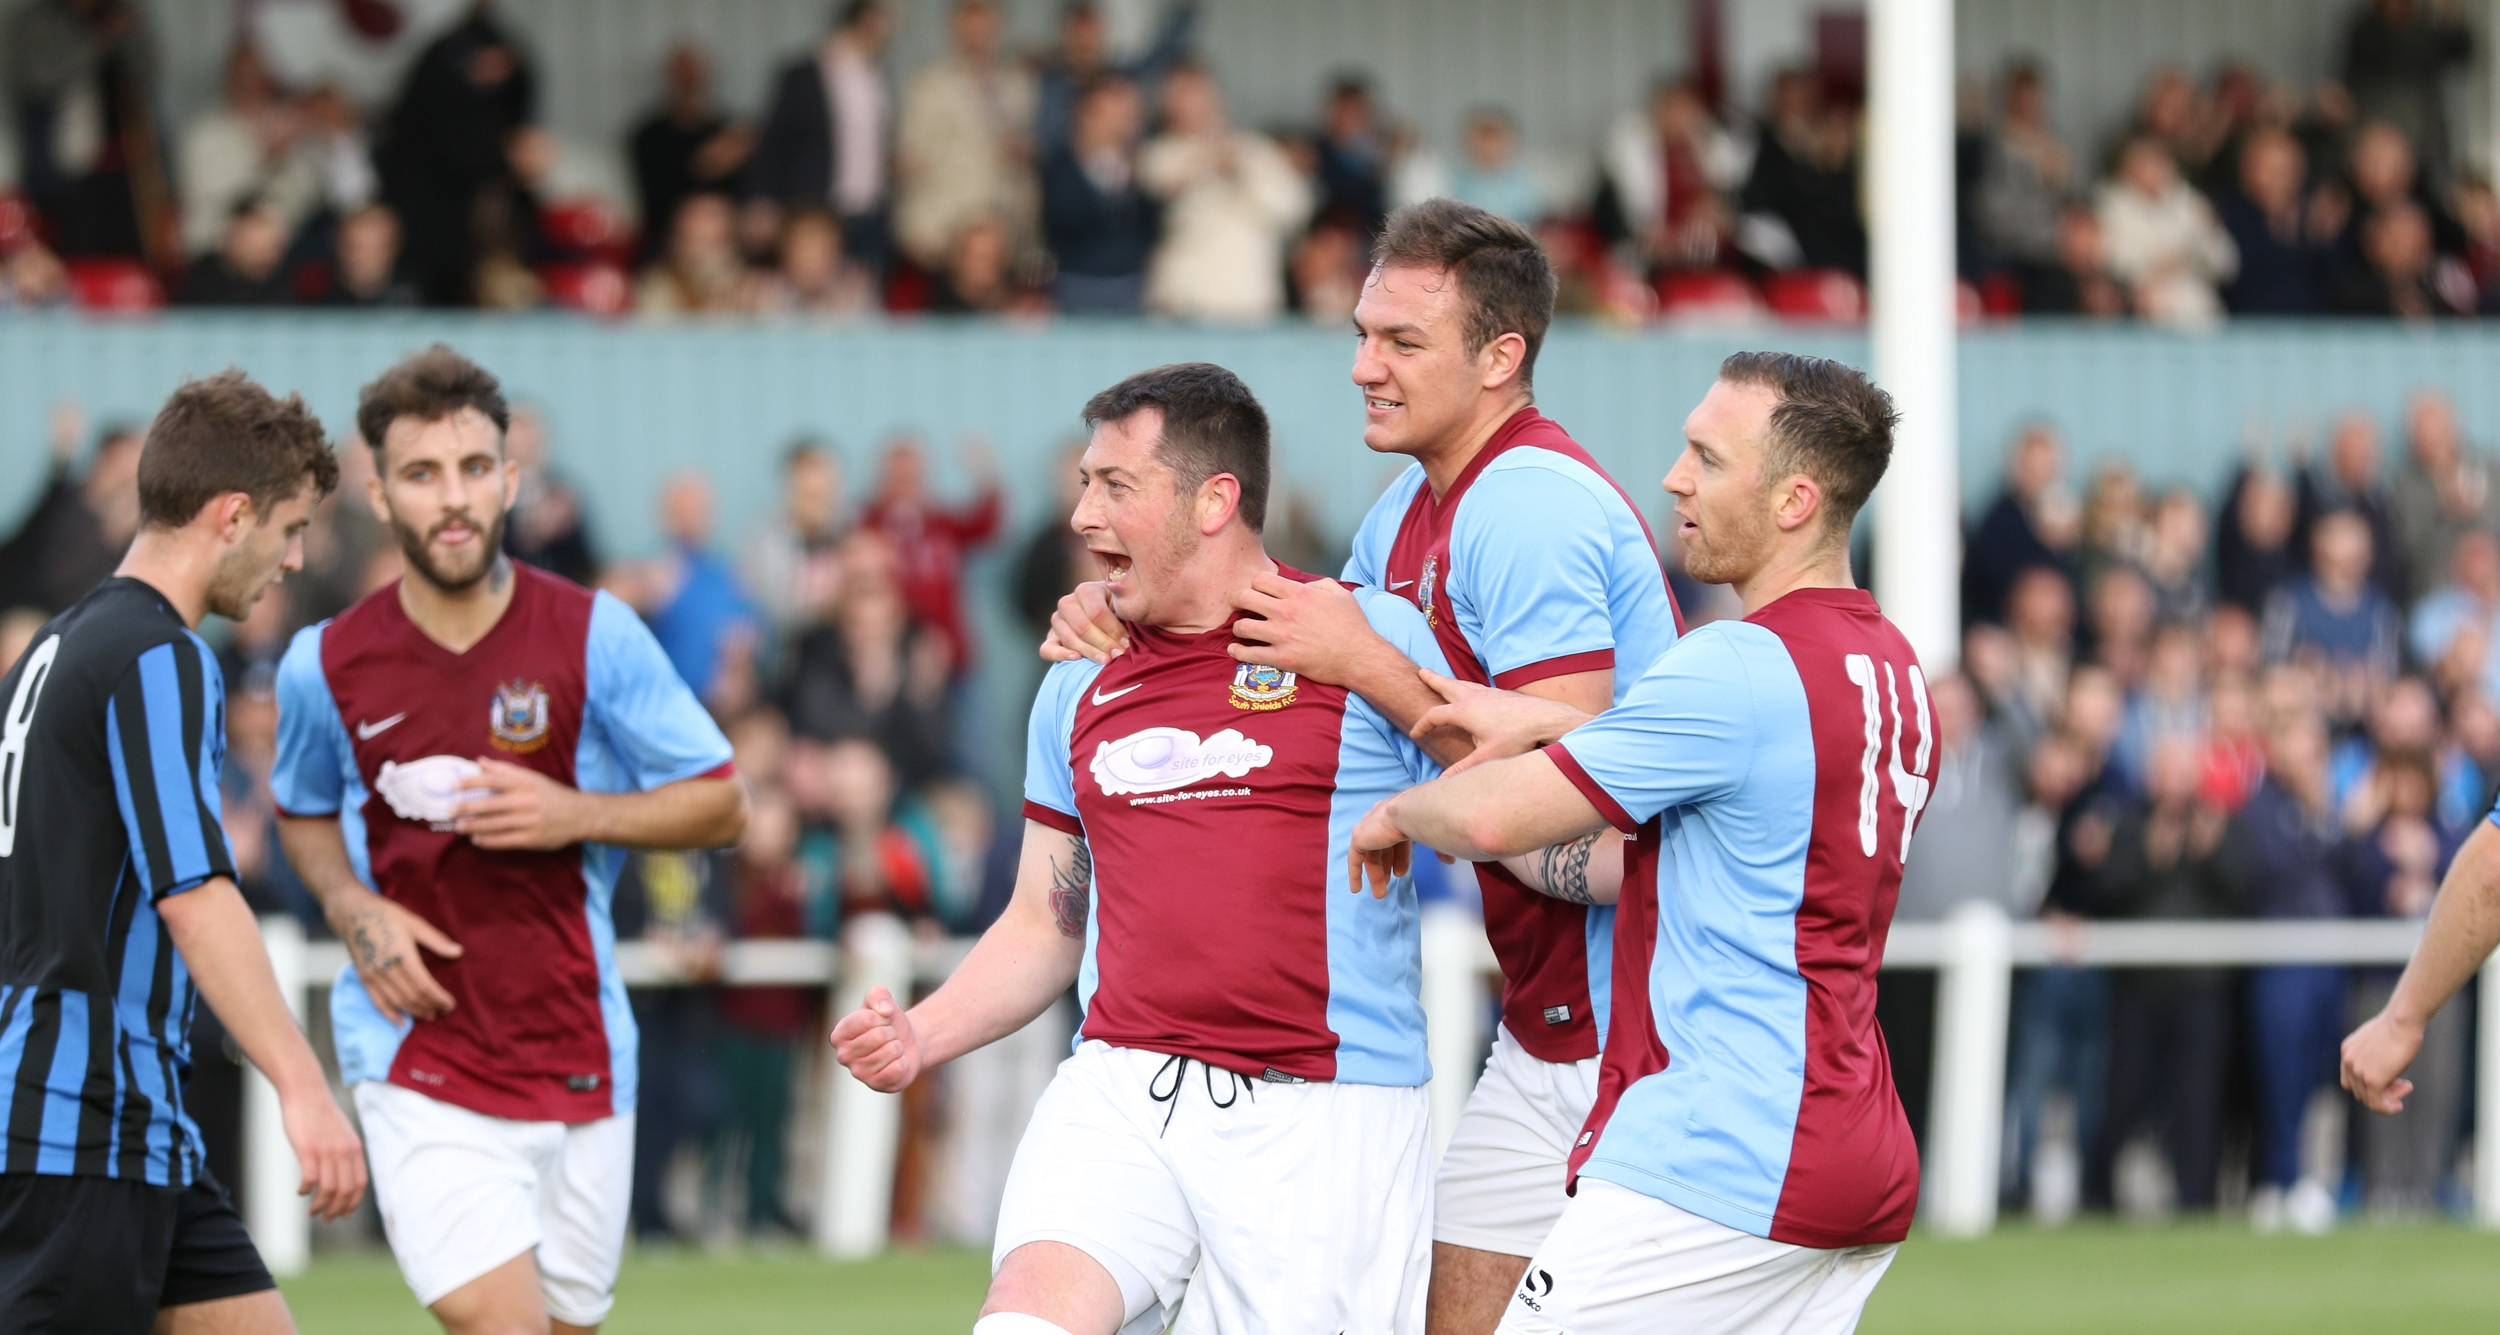 Preview: South Shields vs Tow Law Town